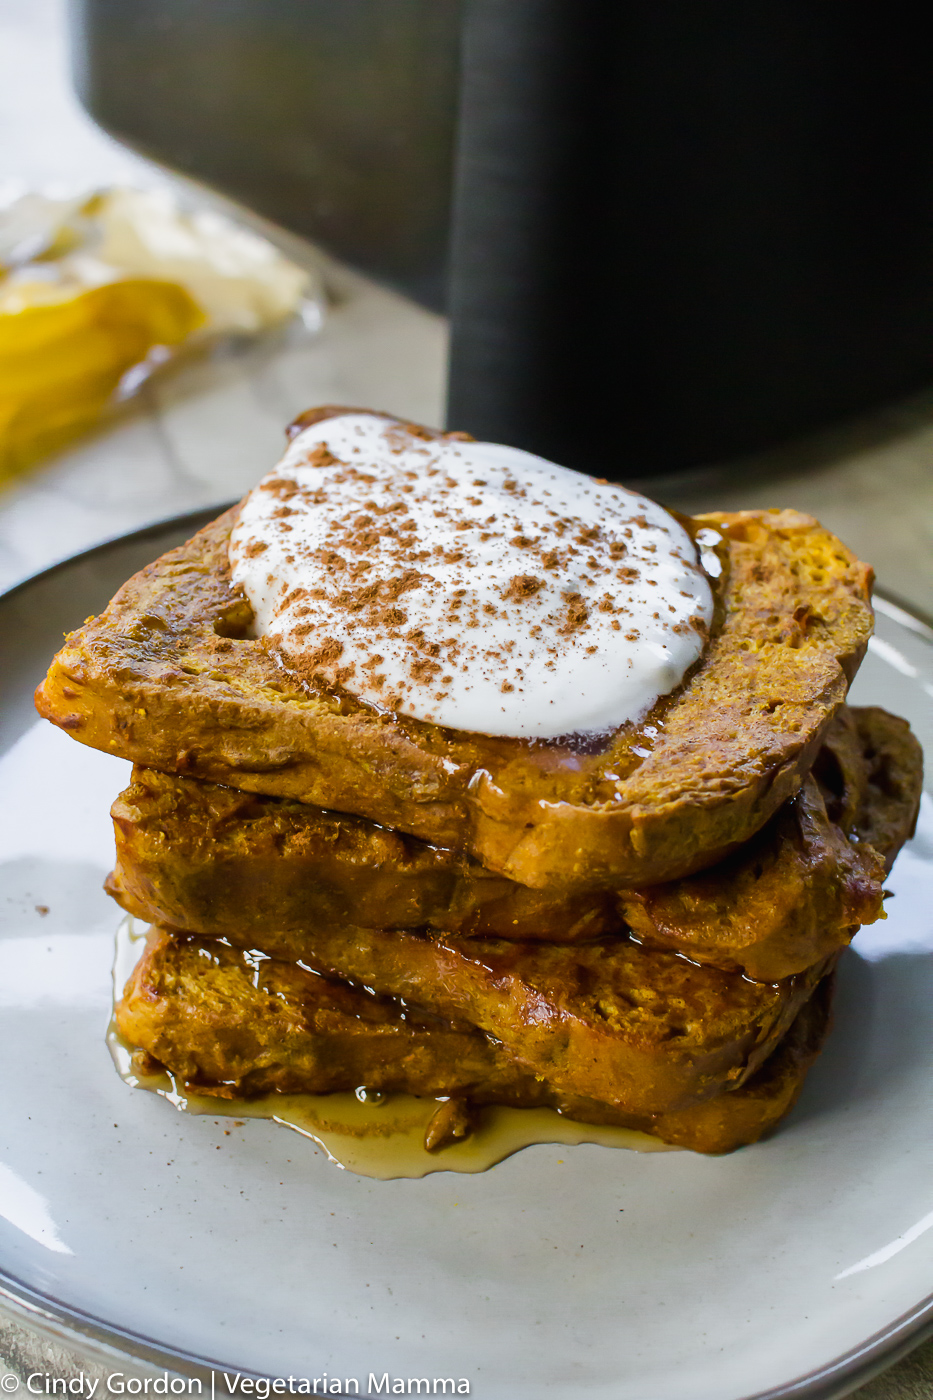 Pumpkin Air Fryer French Toast with whipped cream on top of staked bread